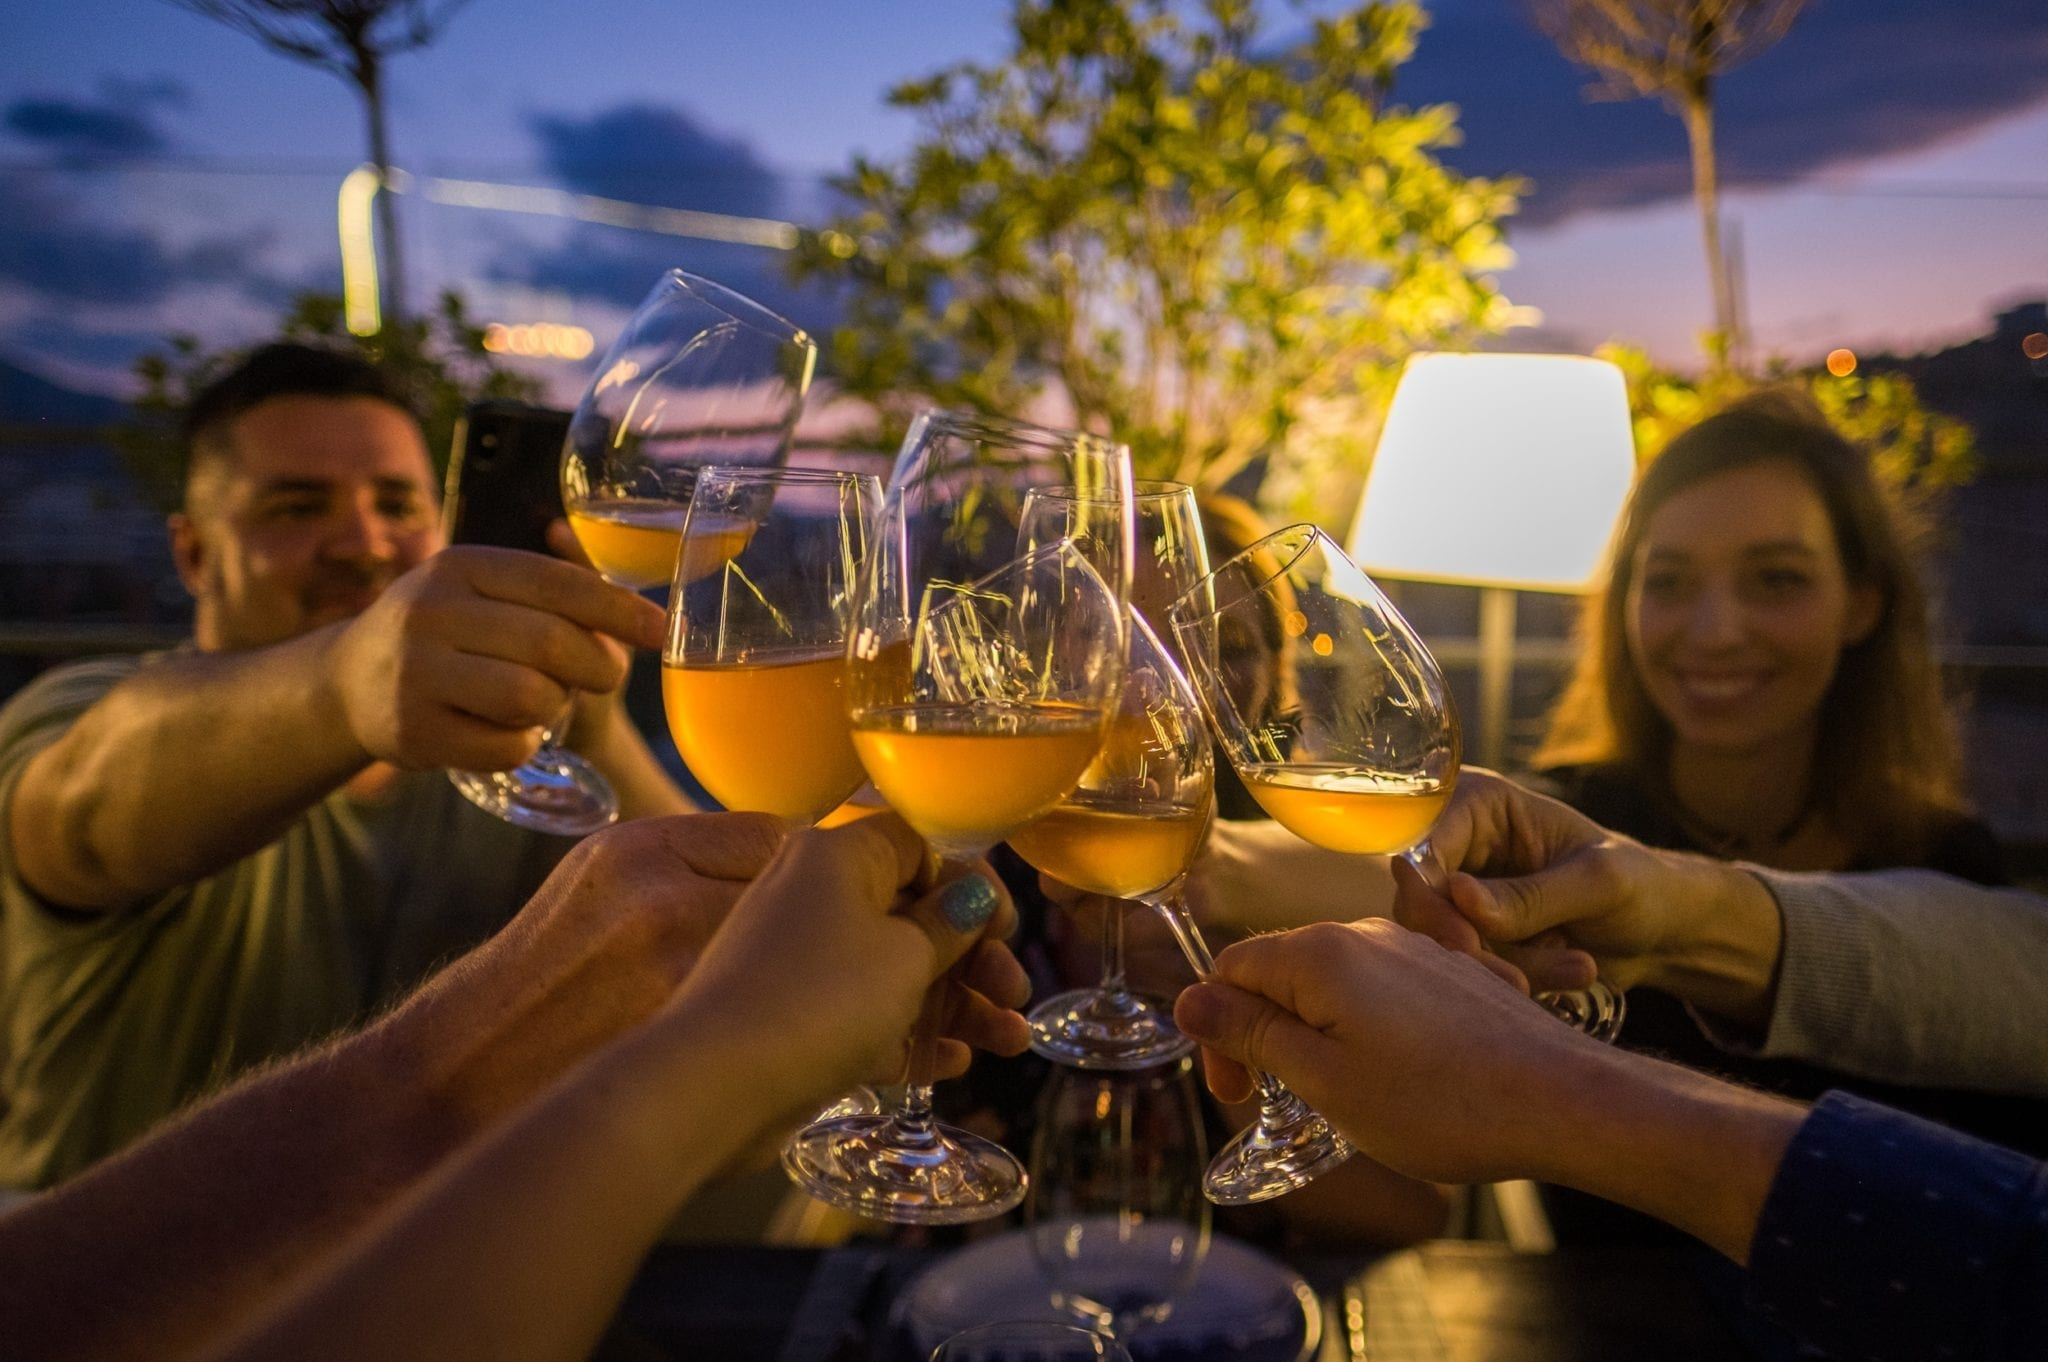 Several hands toasting glasses of orange wine in front of a blue and purple sunset sky.